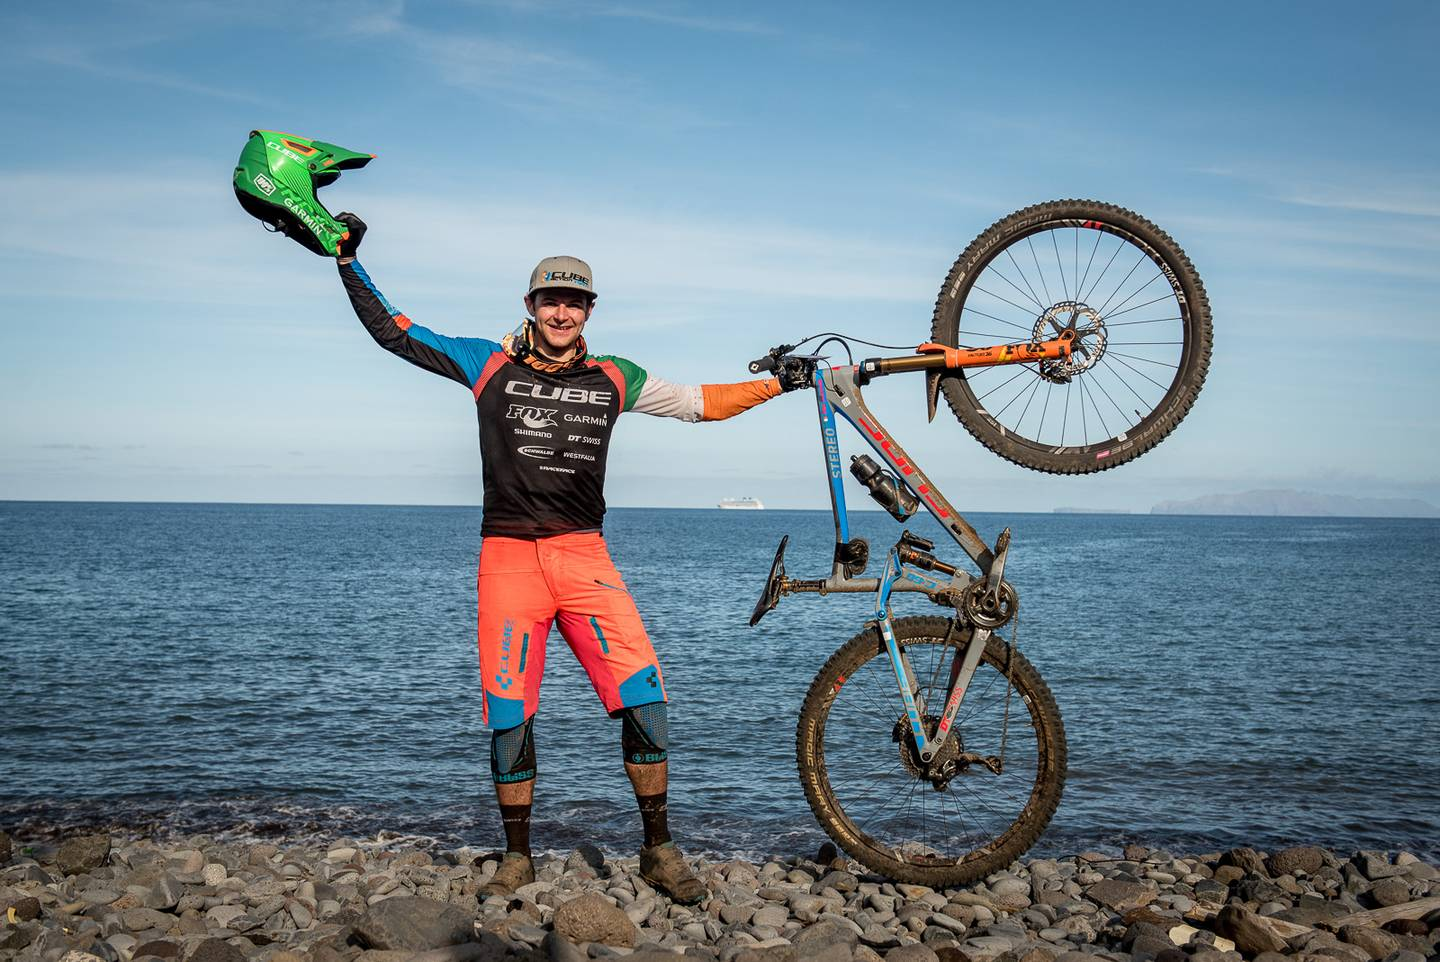 Greg Callaghan, Cube Action Team, et son Cube Stereo 160 vainqueur des Enduro World Series de Madère. © Dave Trumpore